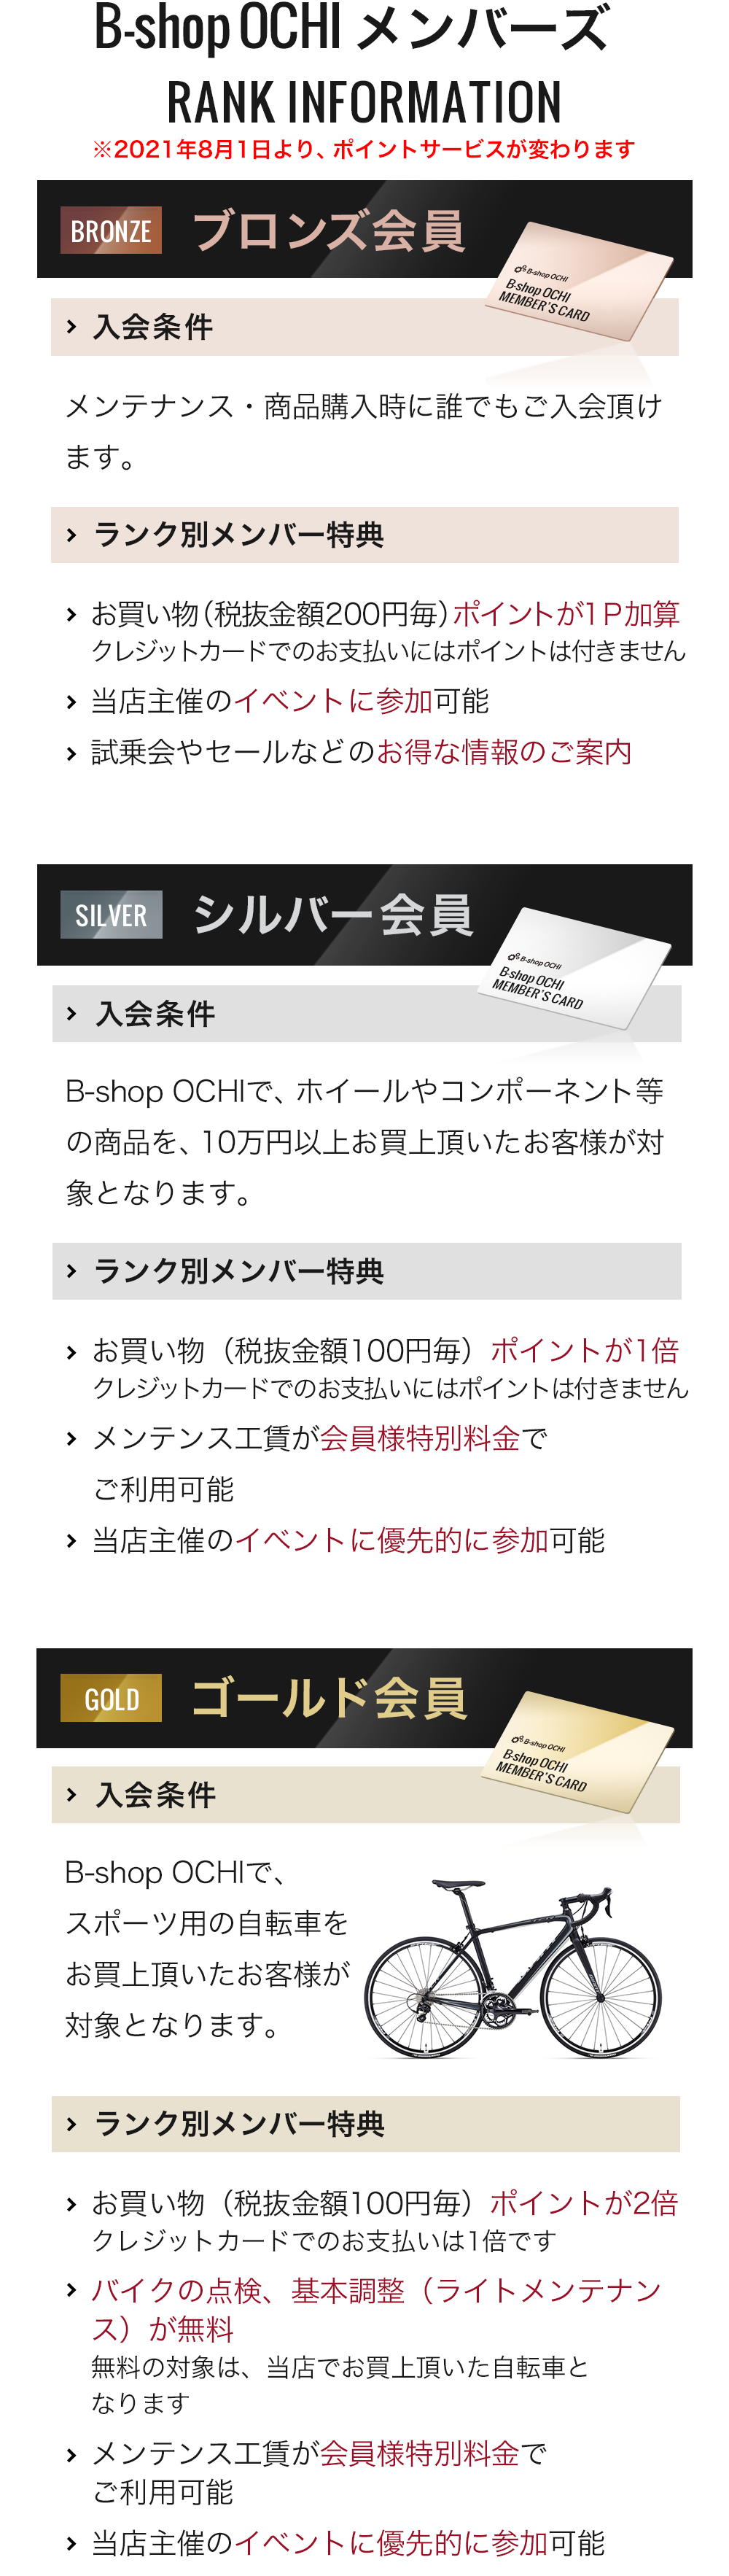 CLUB B-shop OCHI MEMBER'SLANK INFORMATION